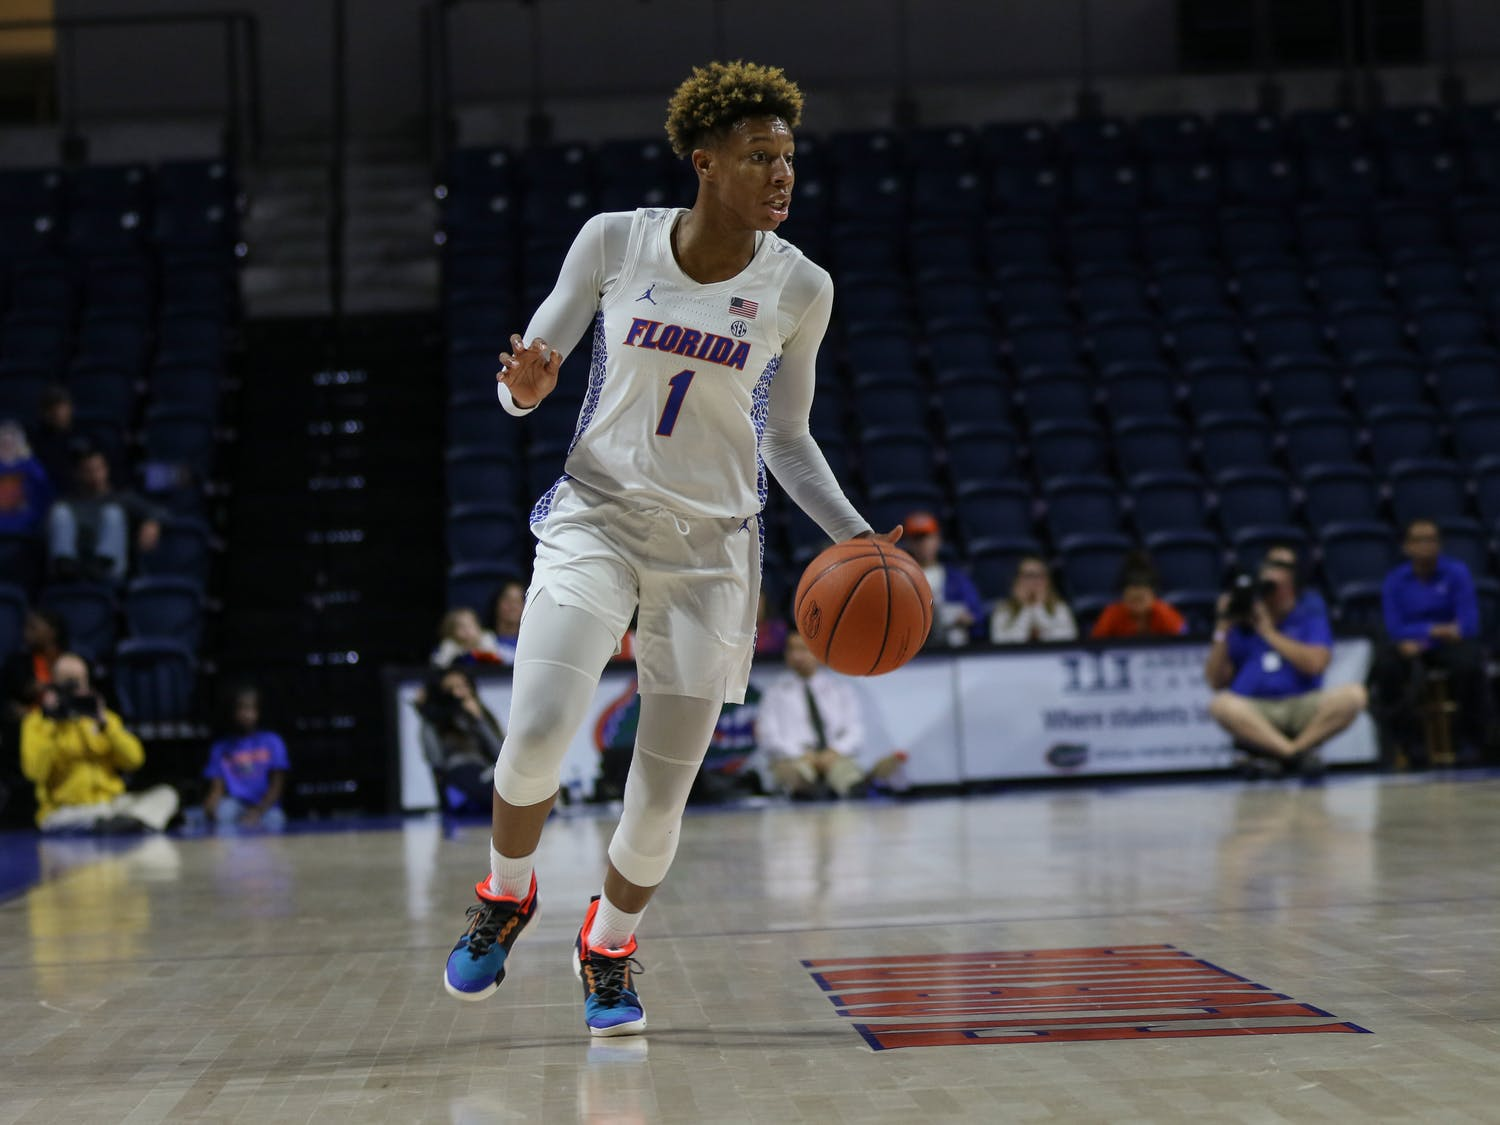 Guard Kiara Smith pitched in a double-double (16 points and 10 rebounds) in Florida's 83-73 home loss to Arkansas on Sunday. She also recorded a team-high five assists.